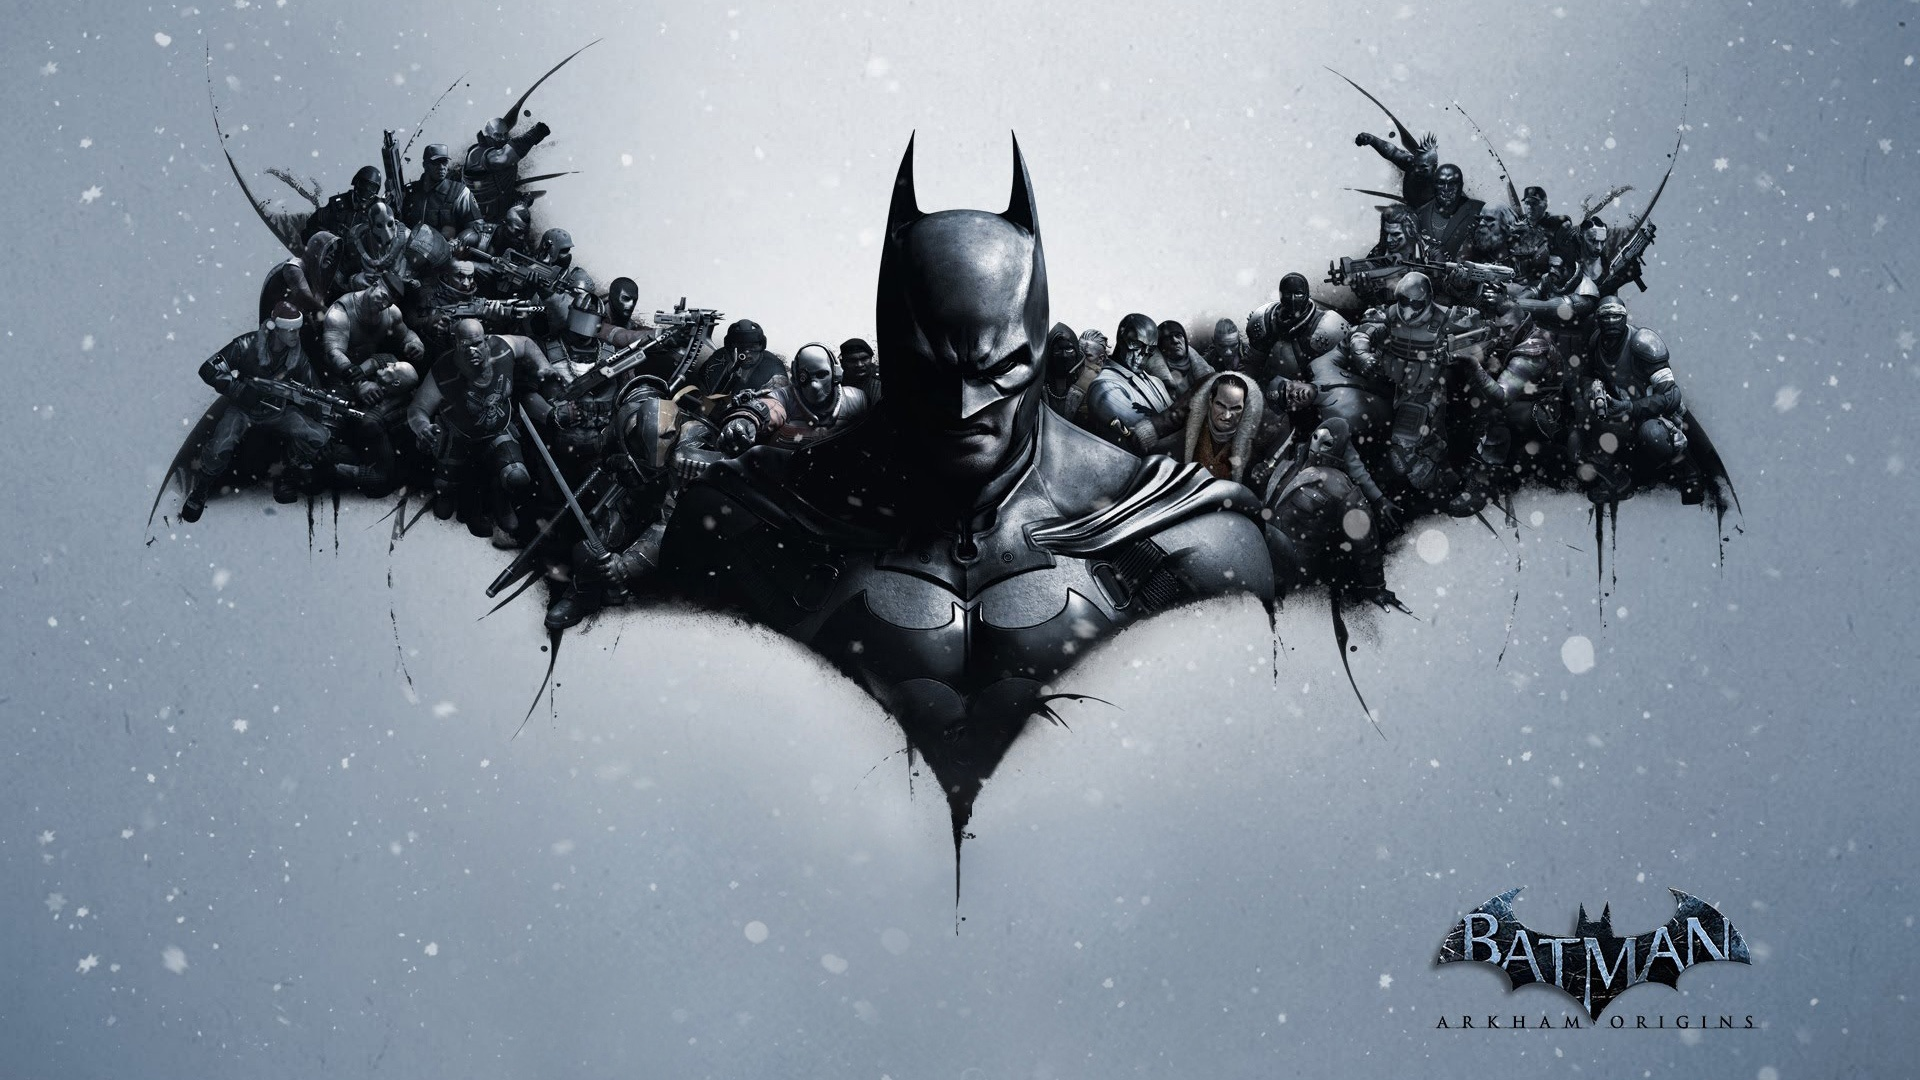 Batman-Arkham-Origins-HD-1920x1080px-Game-HD-wallpaper-wp3802843